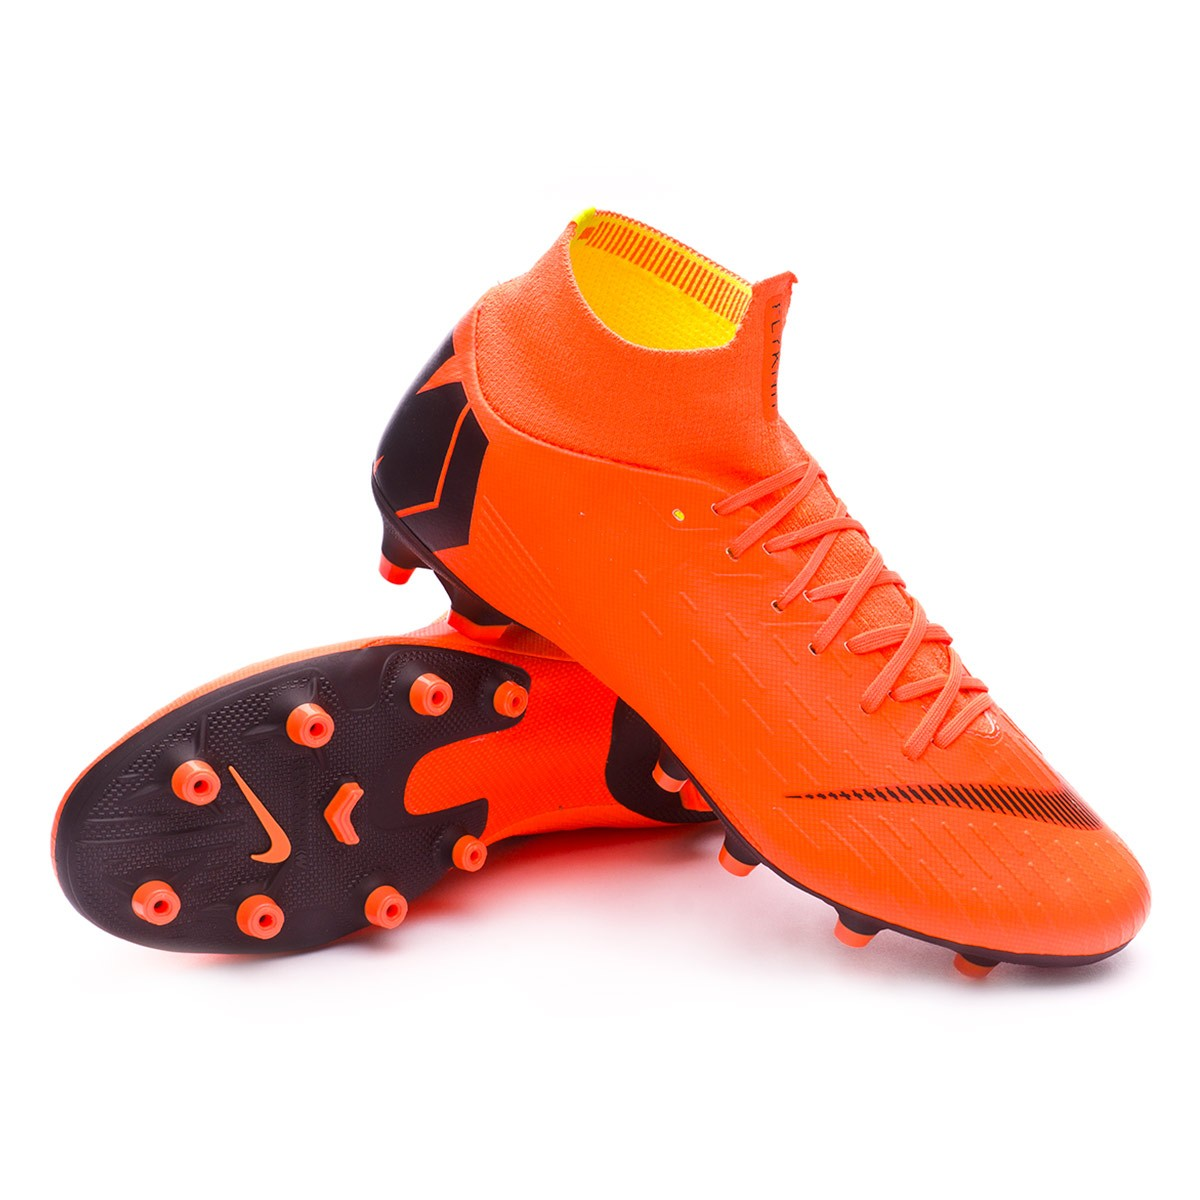 a93da7ad851 Football Boots Nike Mercurial Superfly VI Pro AG-Pro Total orange ...